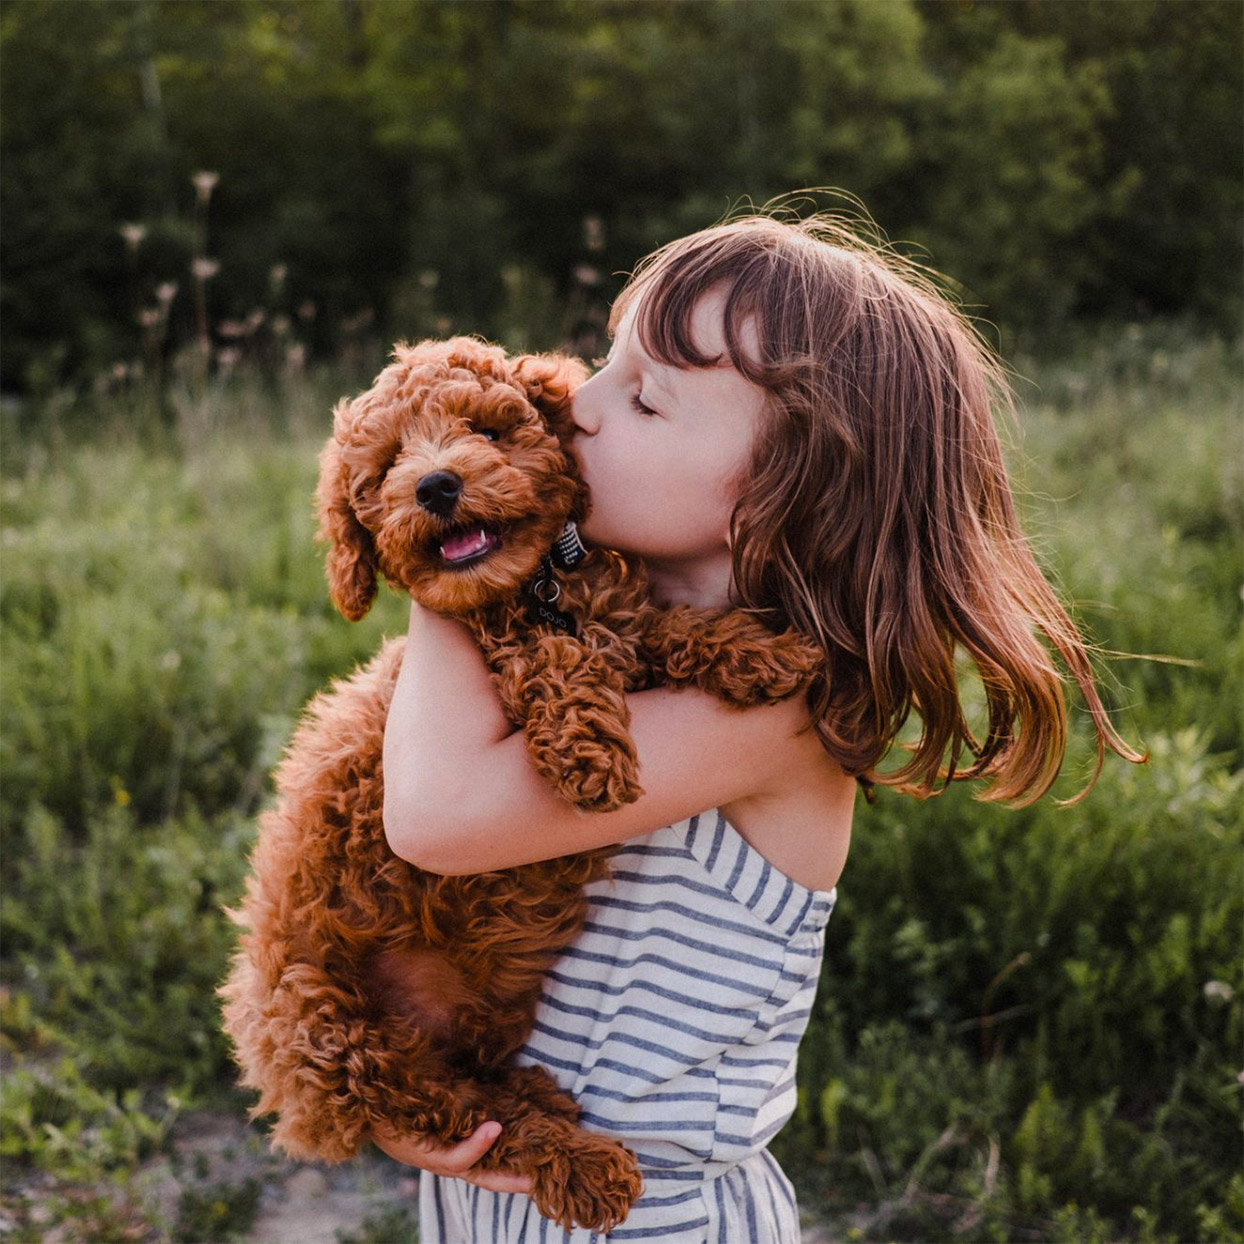 Growing Up With a Dog Can Improve Children's Health and Happiness, Studies Find